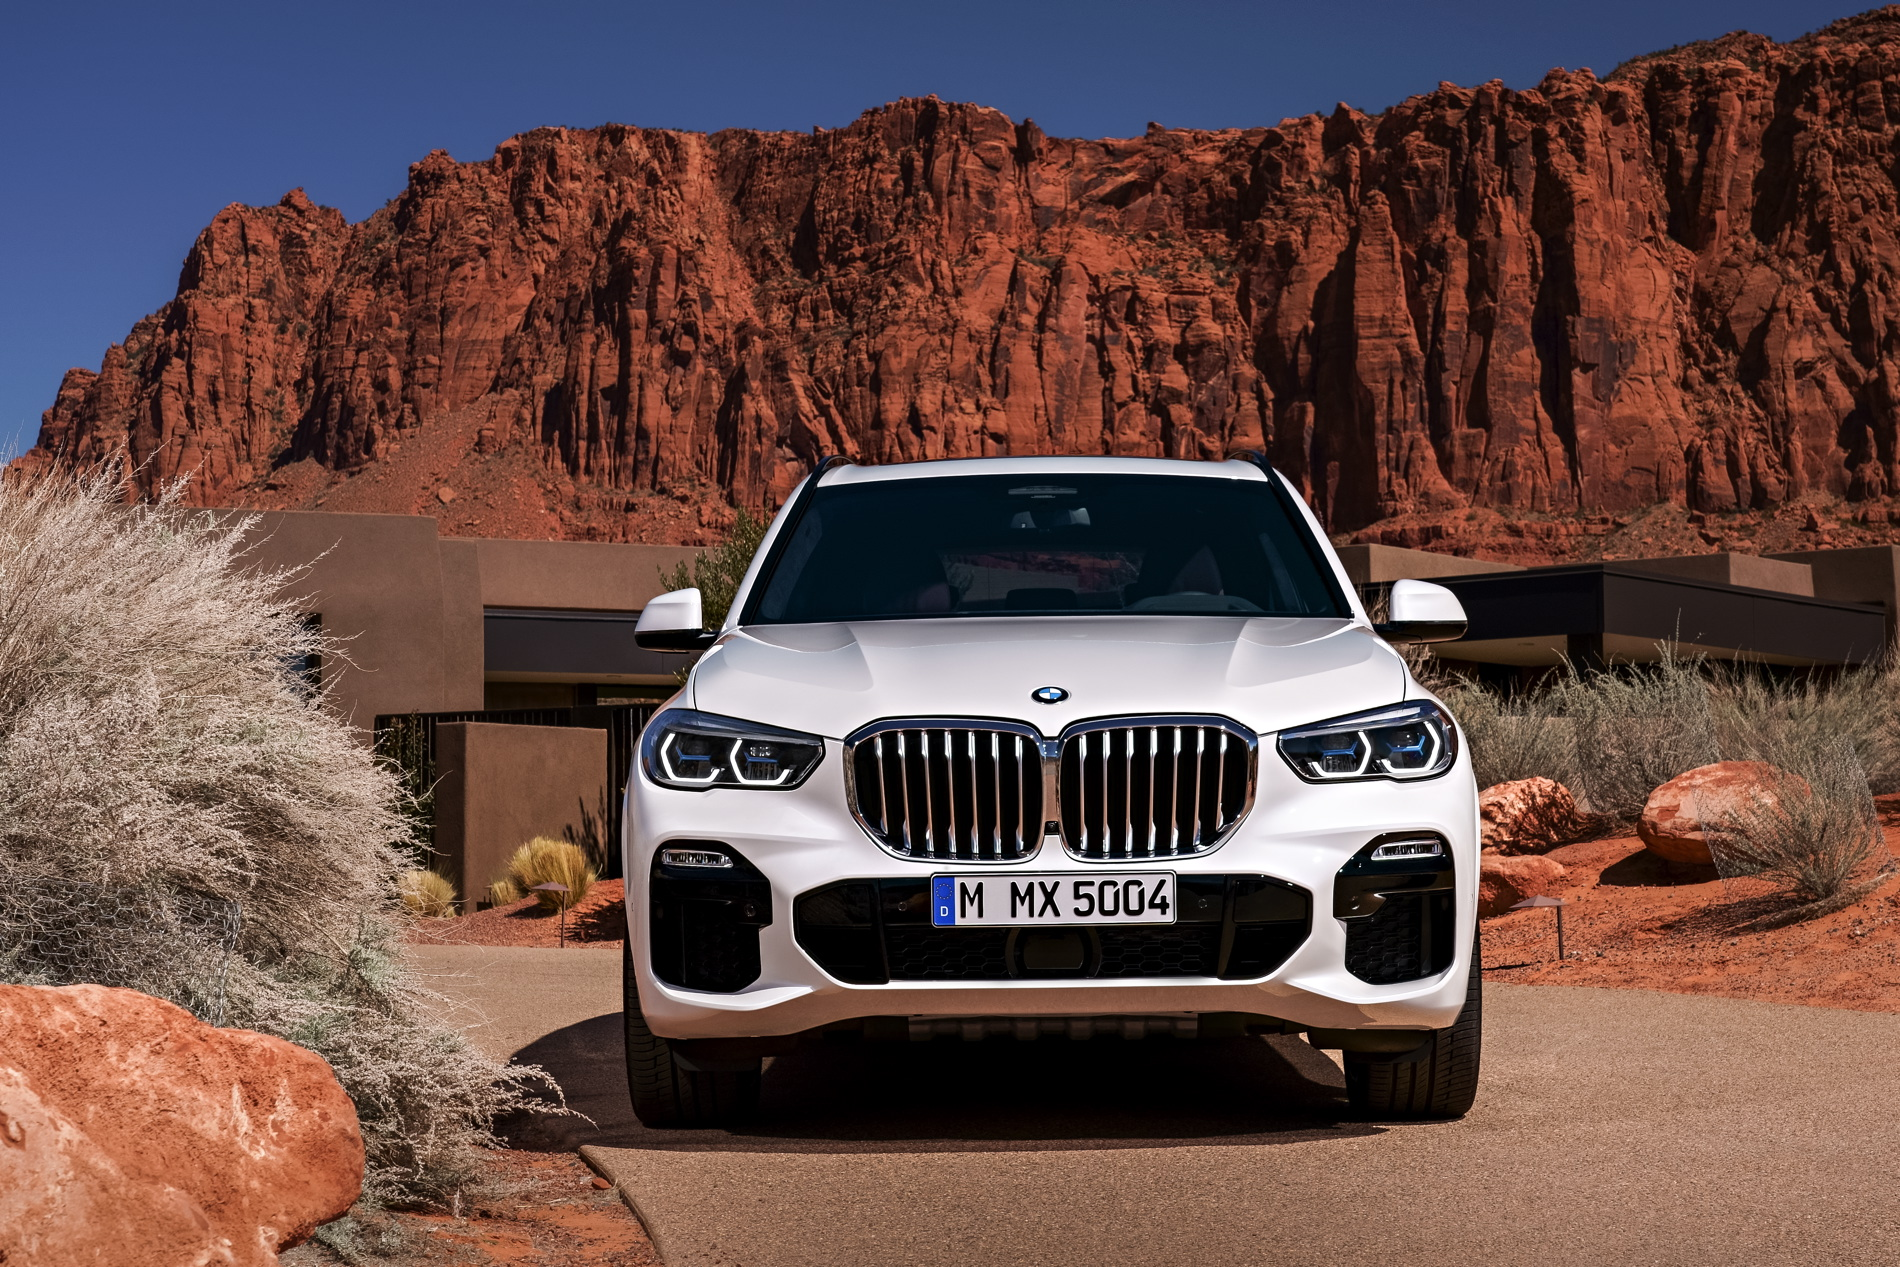 Bmw X5 German Price List Released